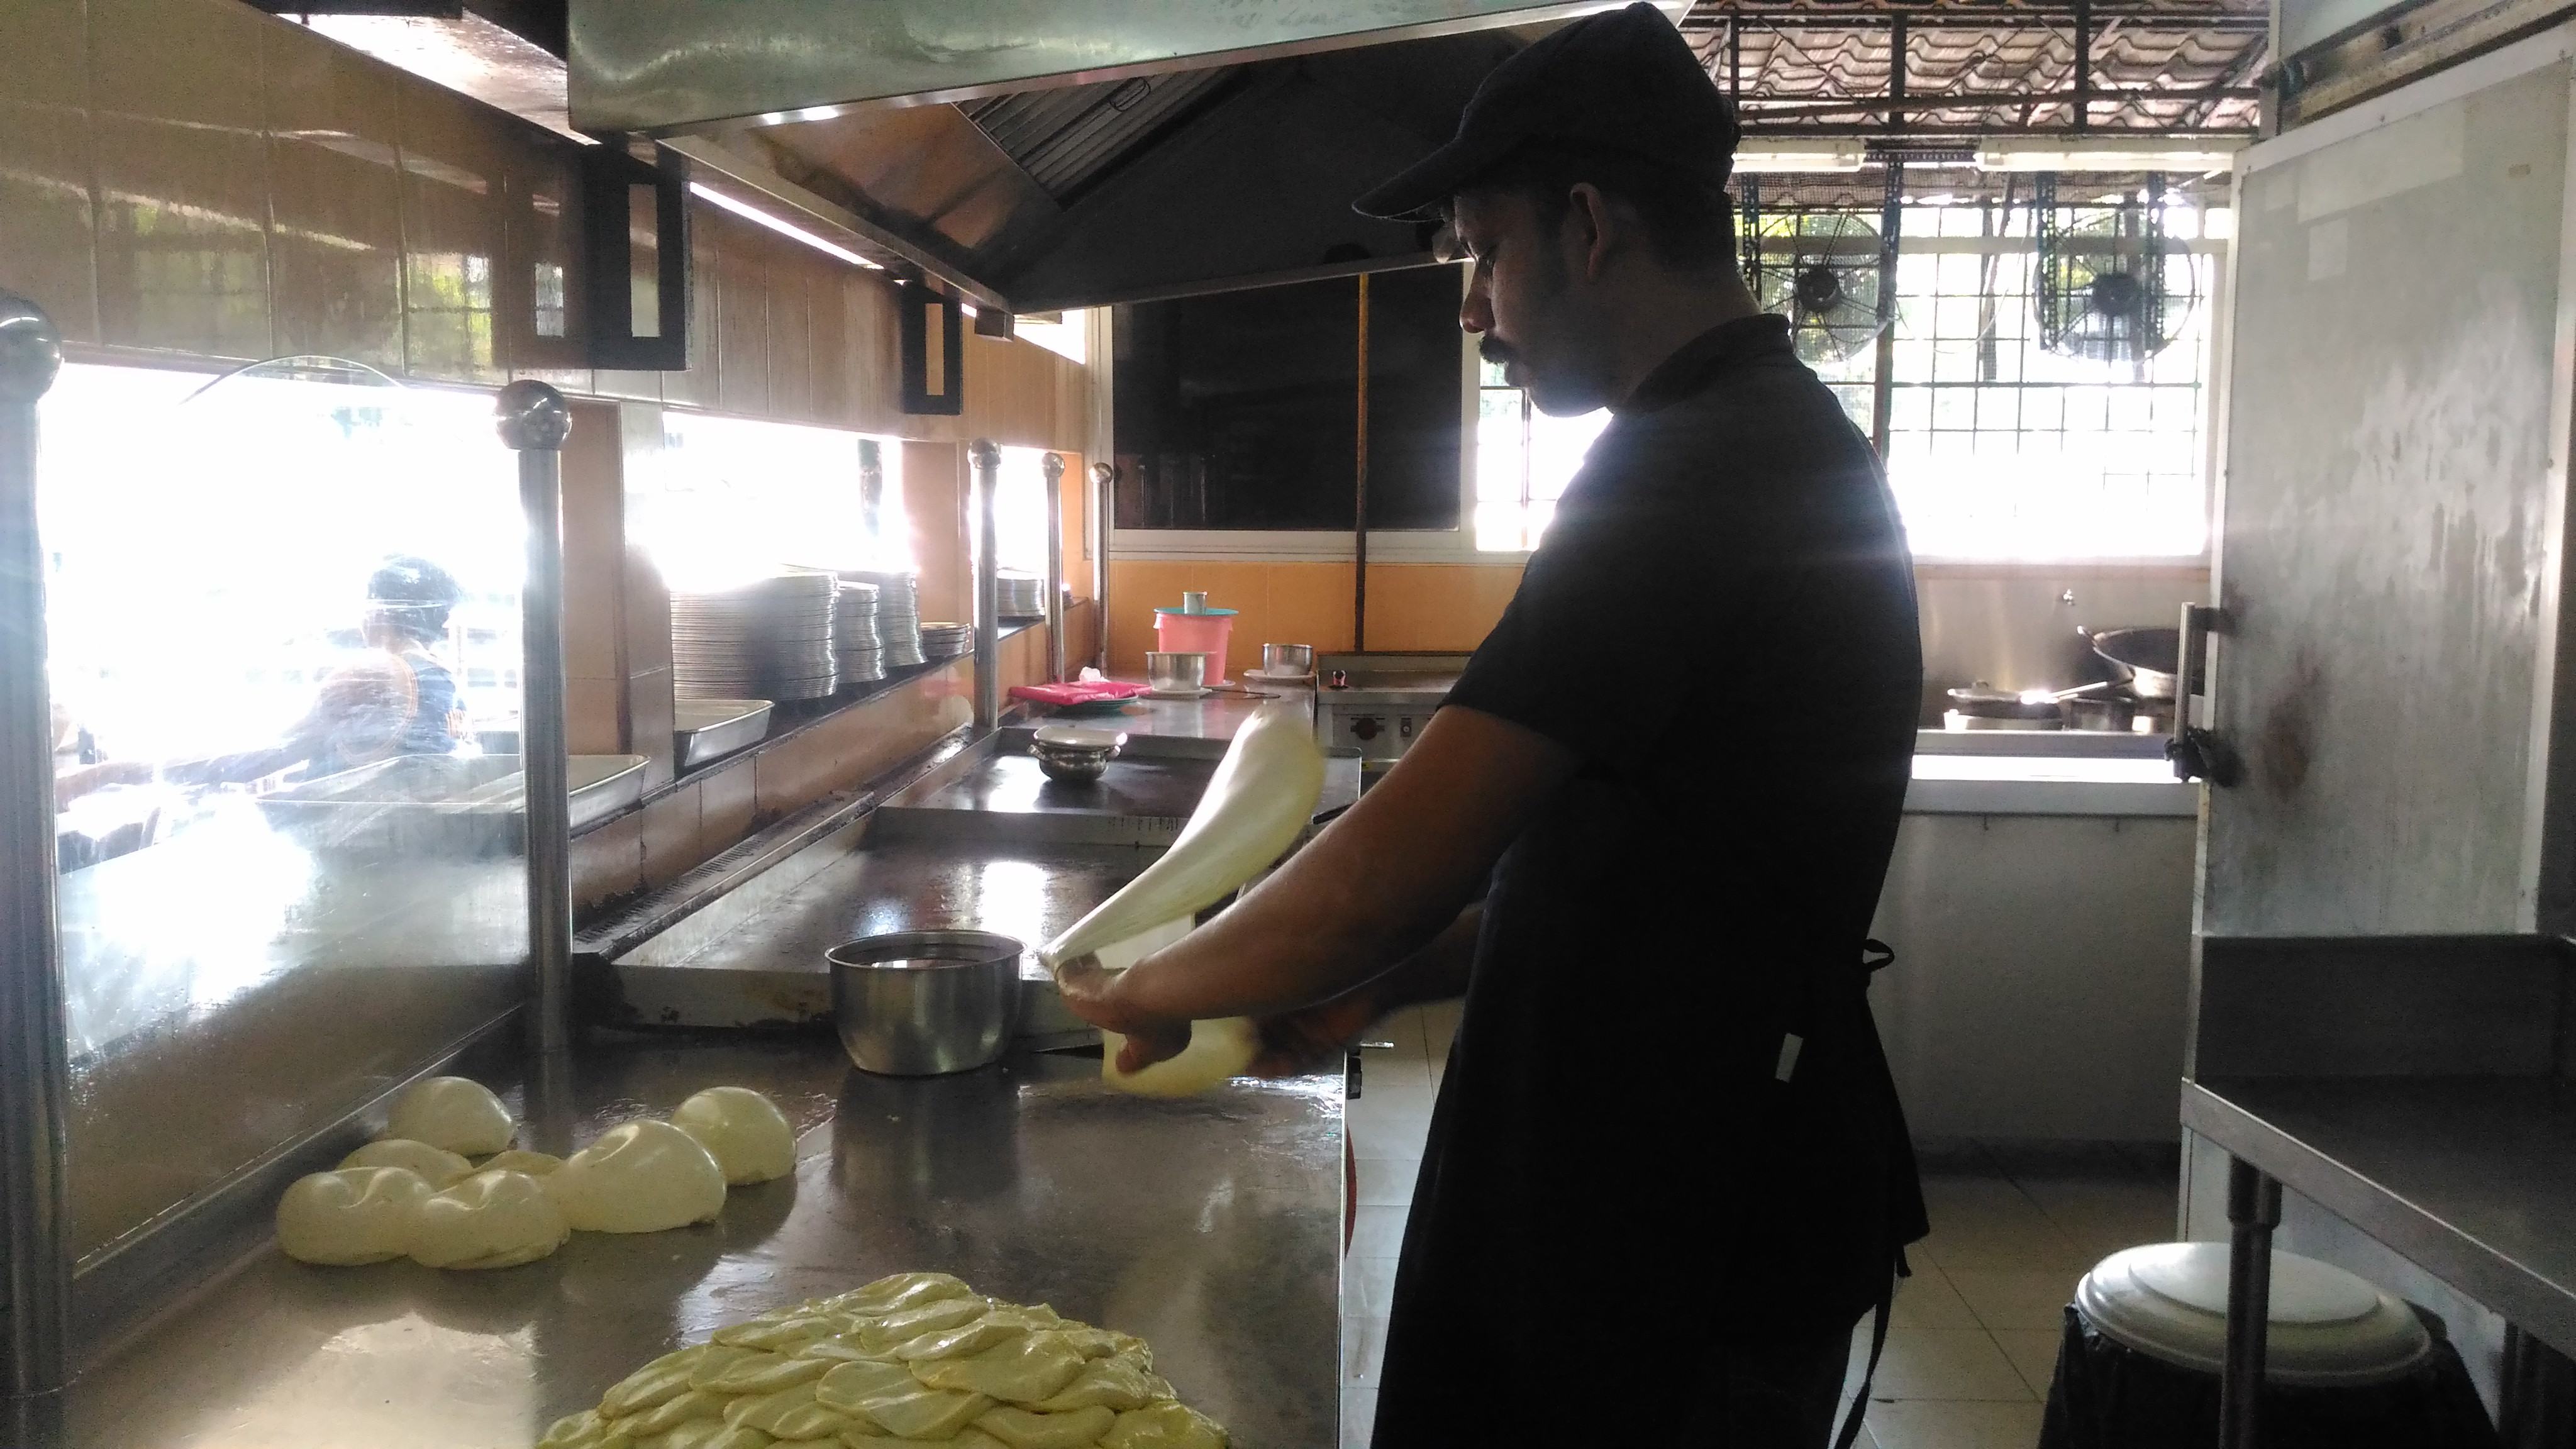 Check out how this roti master put his skills on show!